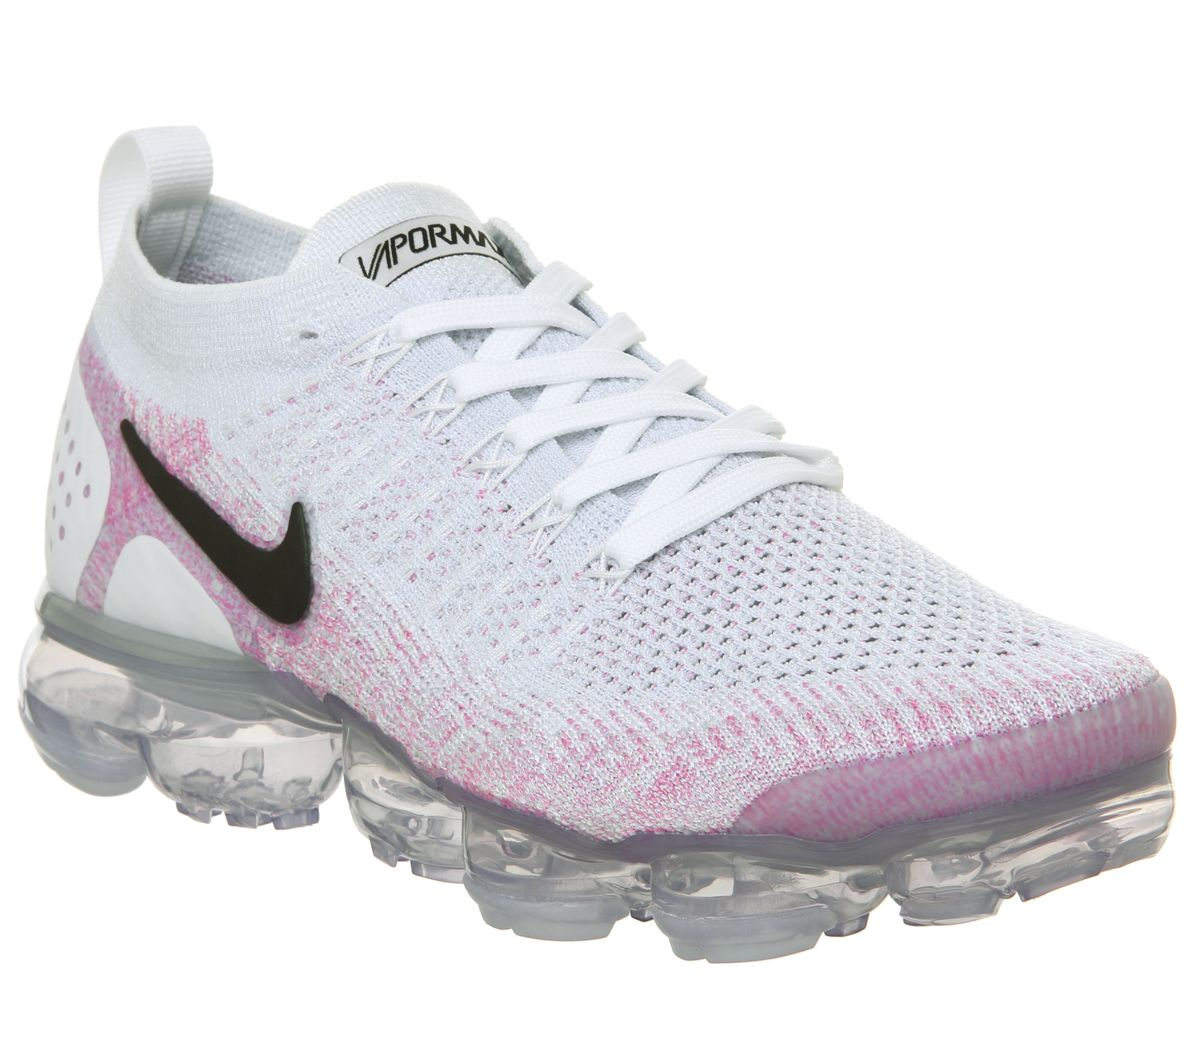 buy online 9776a 8ba45 Nike Vapormax Air Vapormax Flyknit 2 Trainers White Black ...